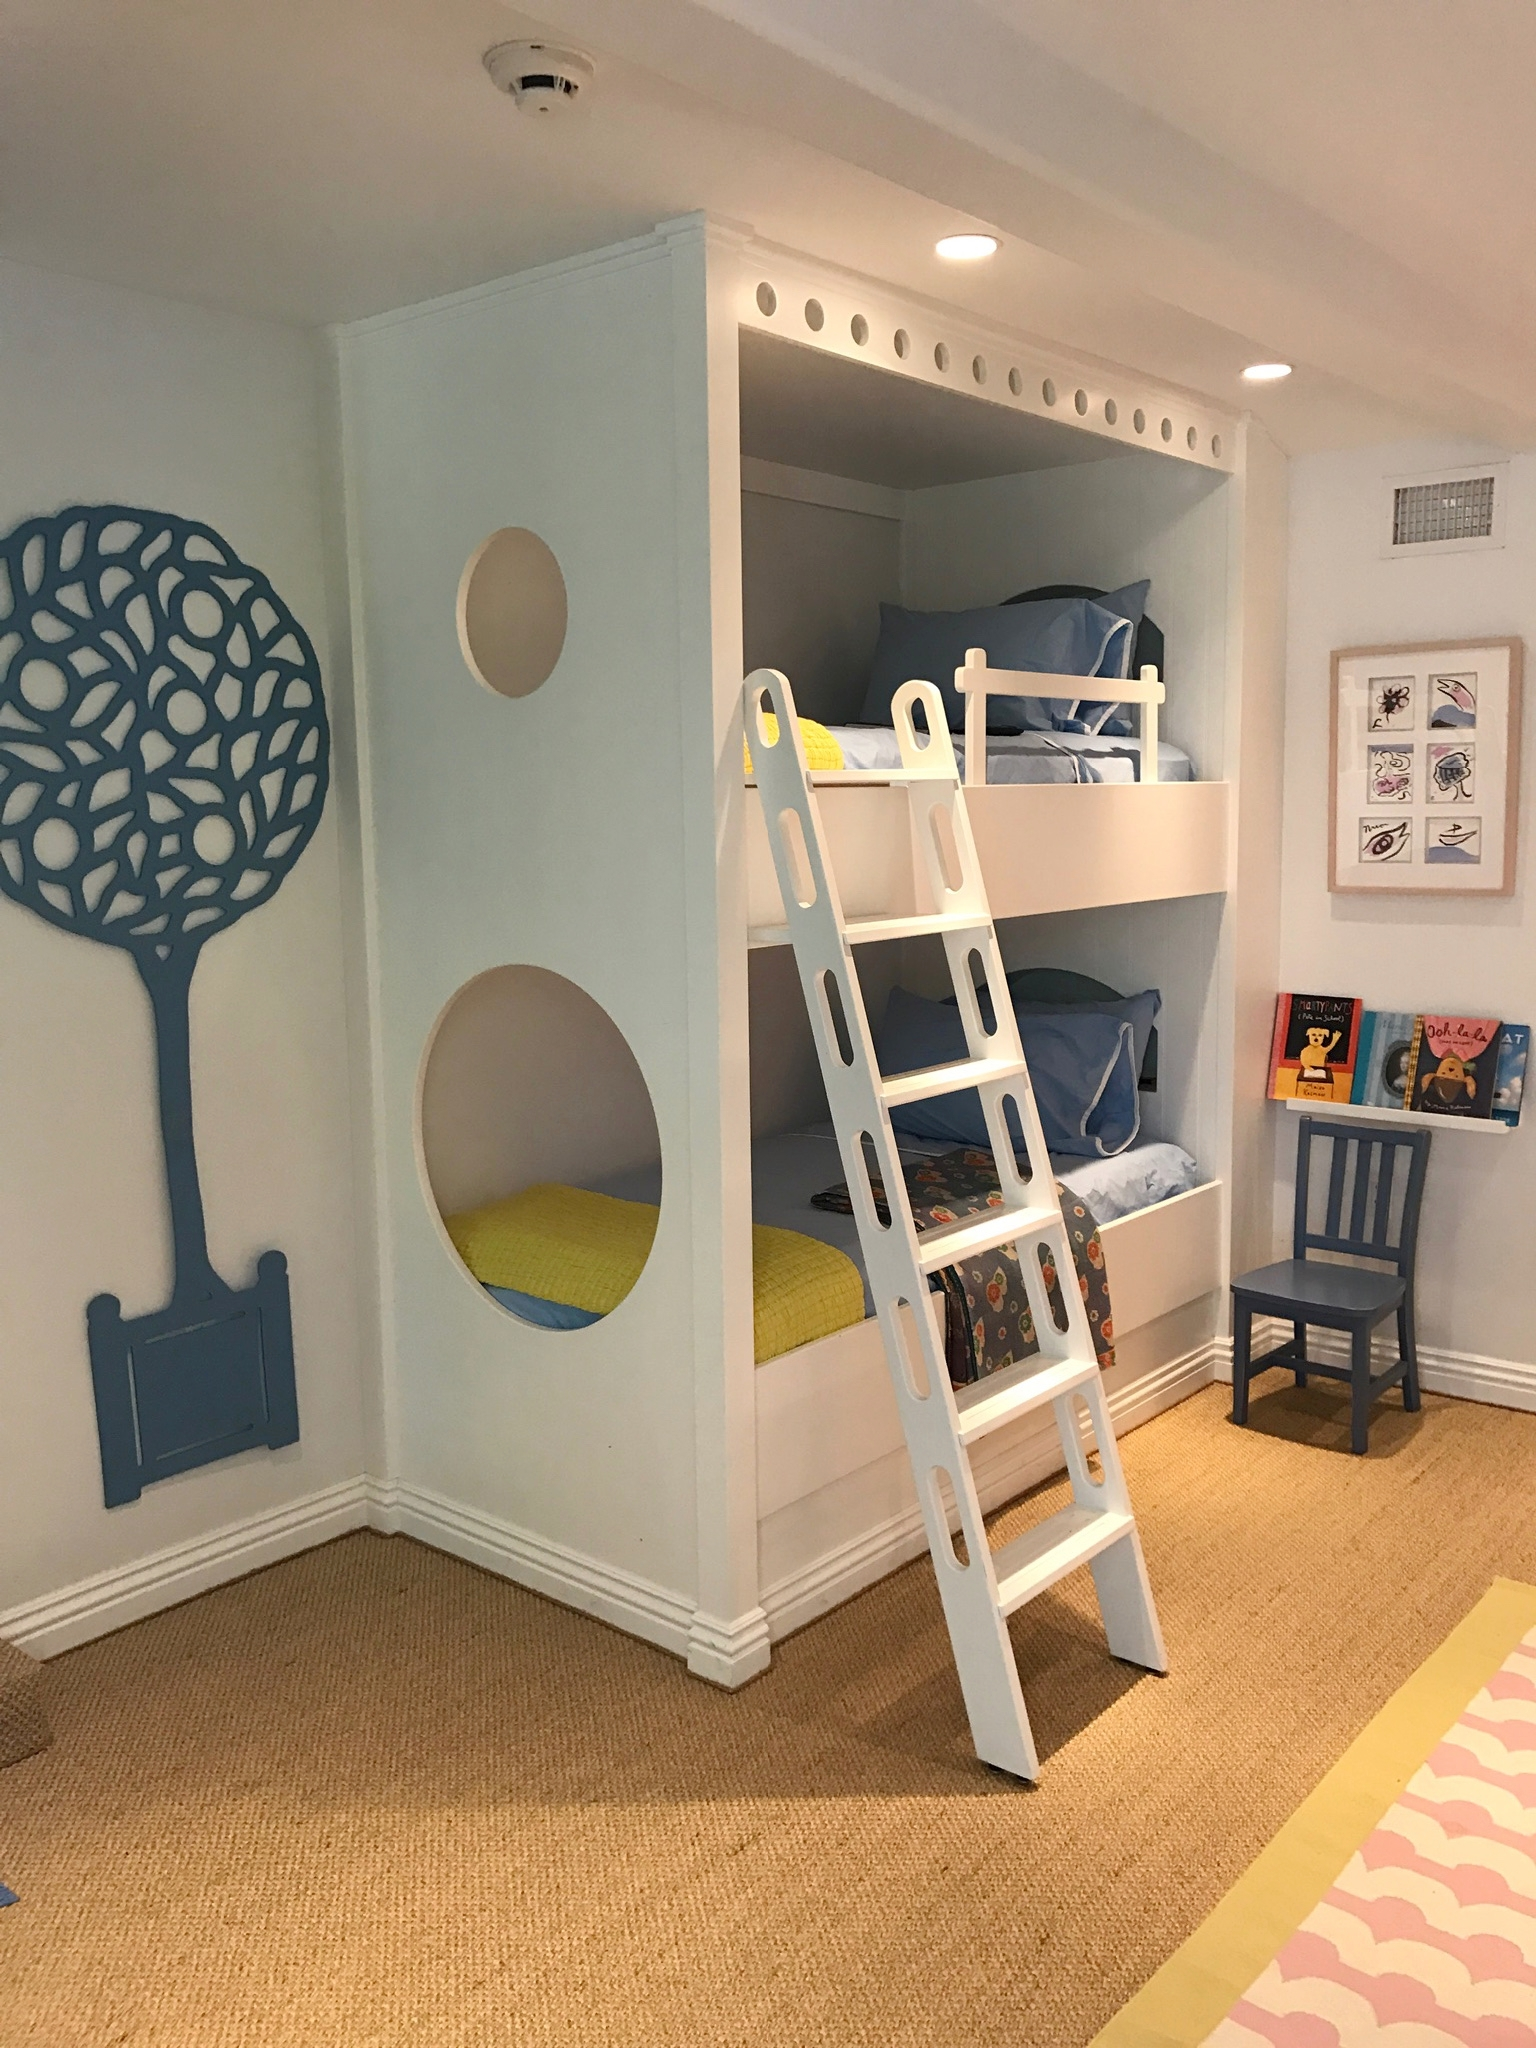 Bunk room with two beds and ladder in Laguna Beach featuring a tree cut out on wall.